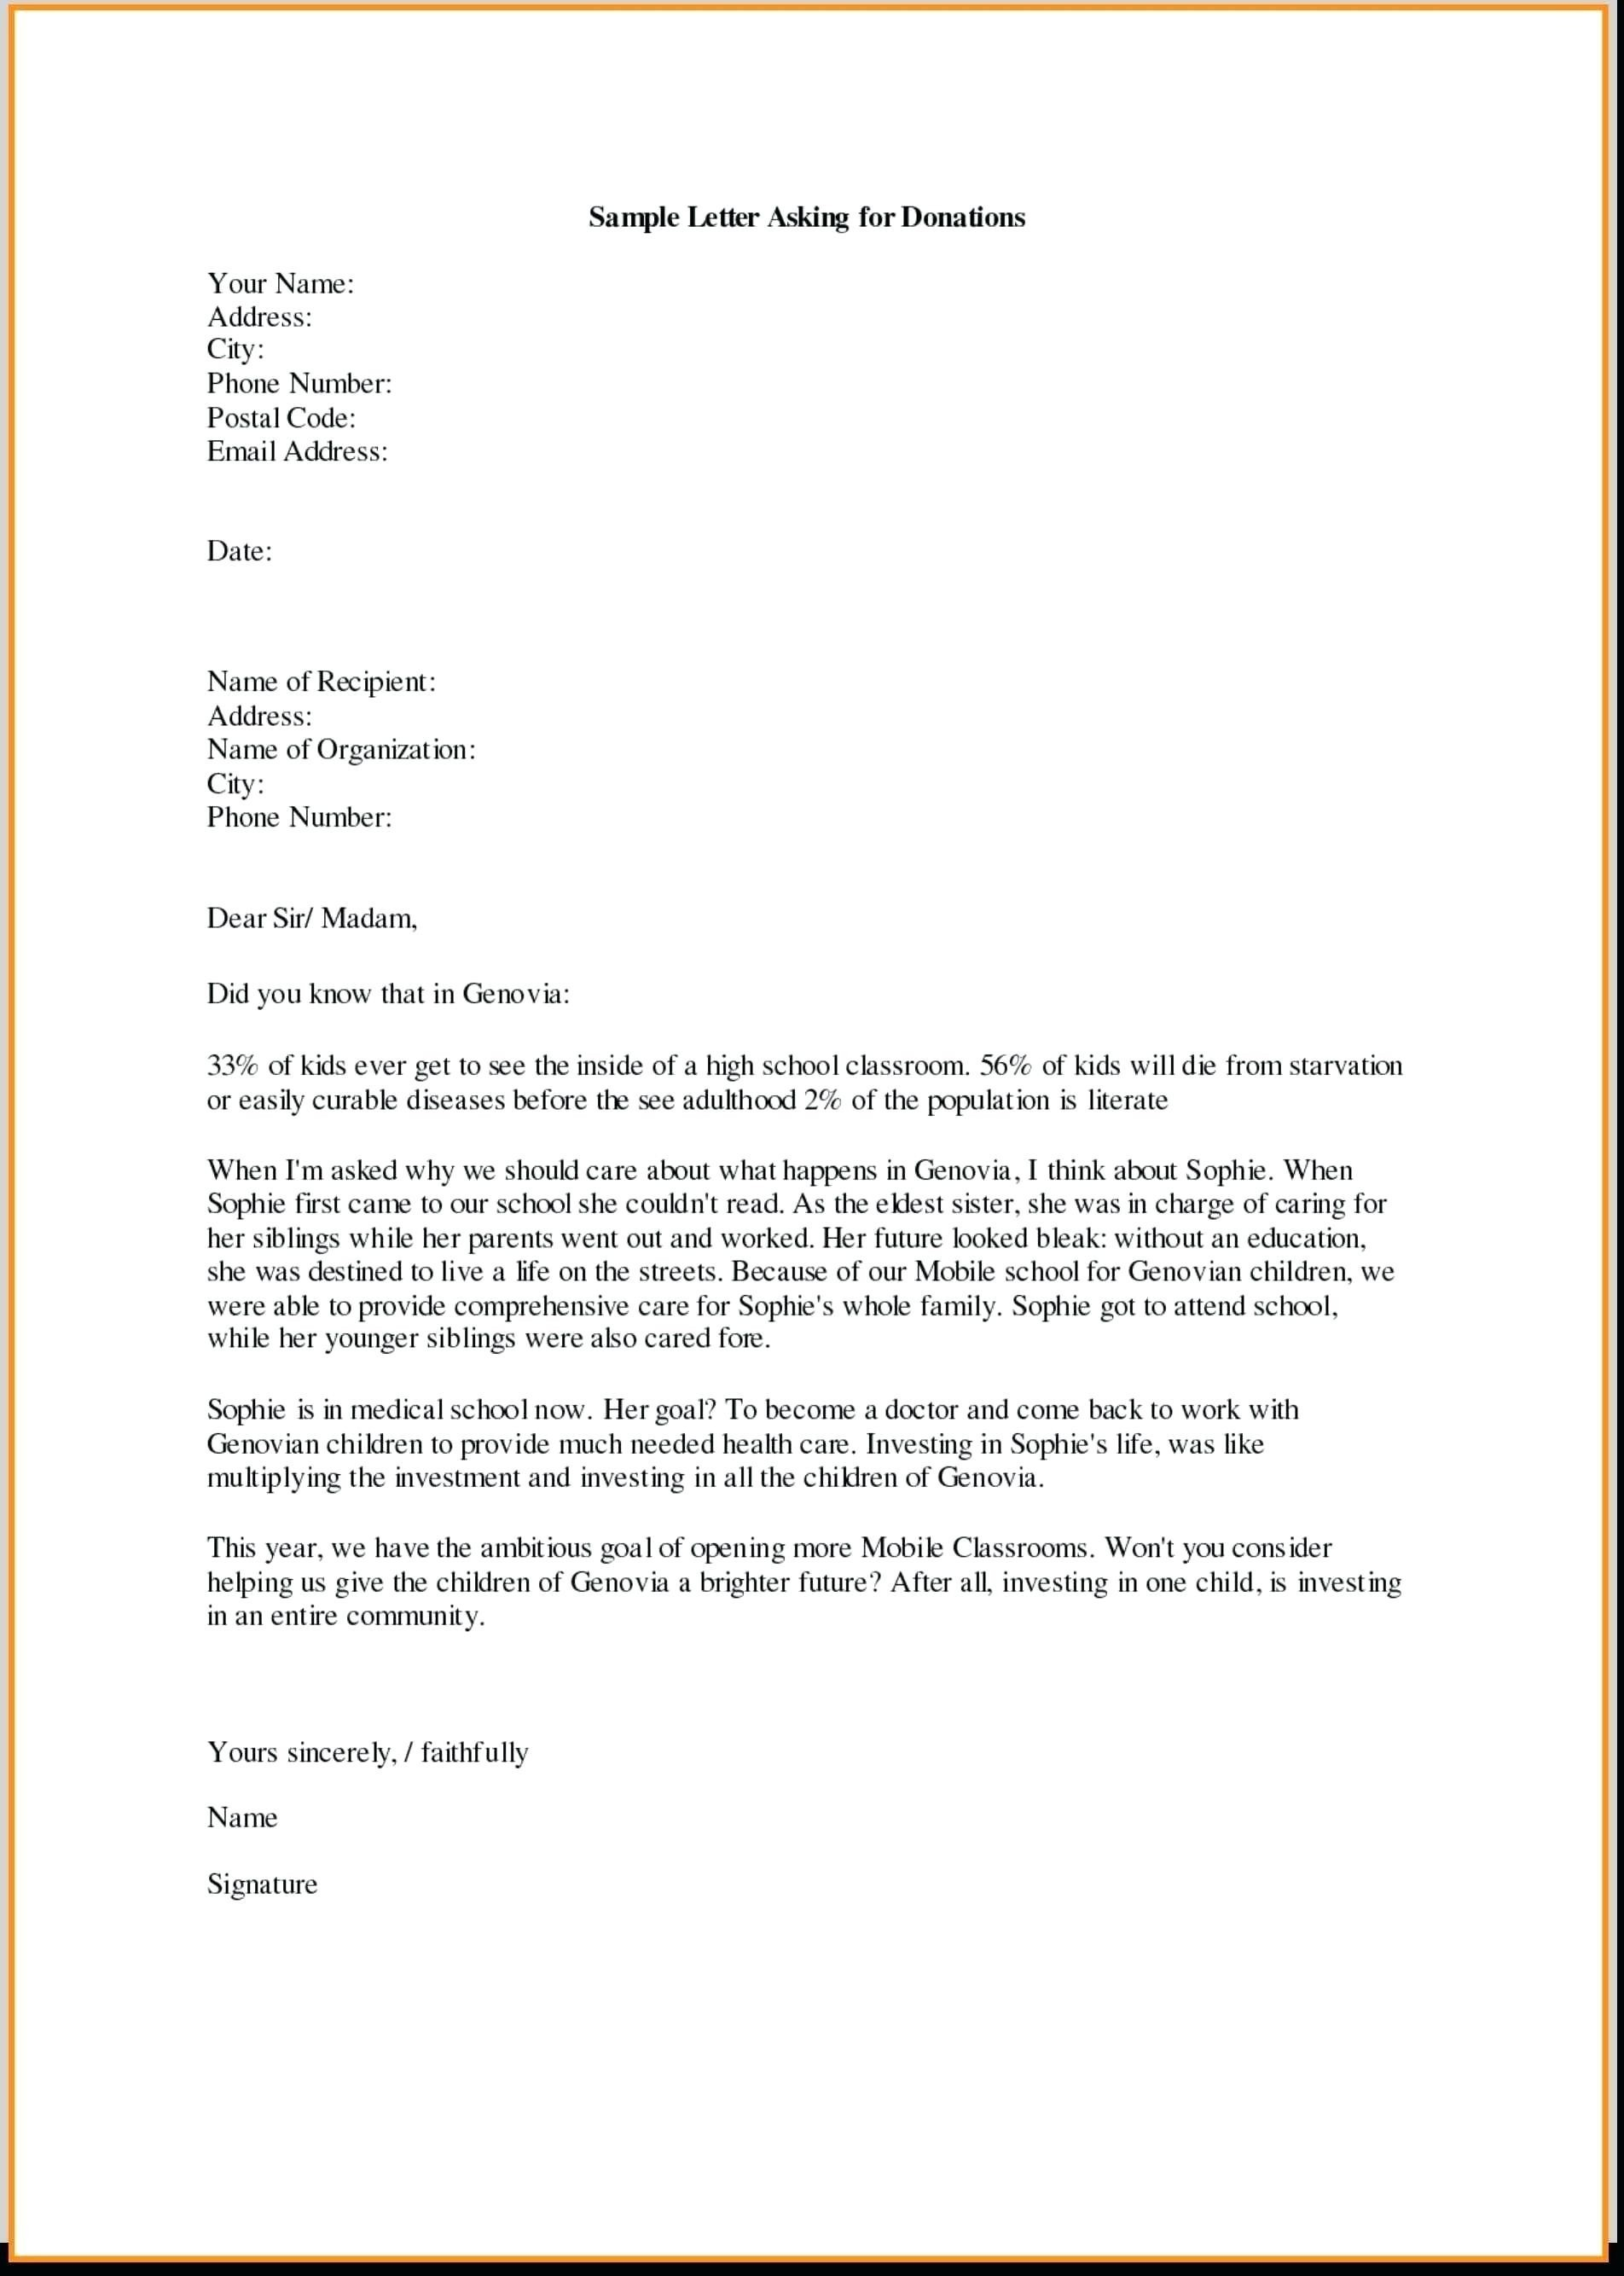 Church Donation Letter Template - Samples Letters Request Donation Best Samples Letters Request